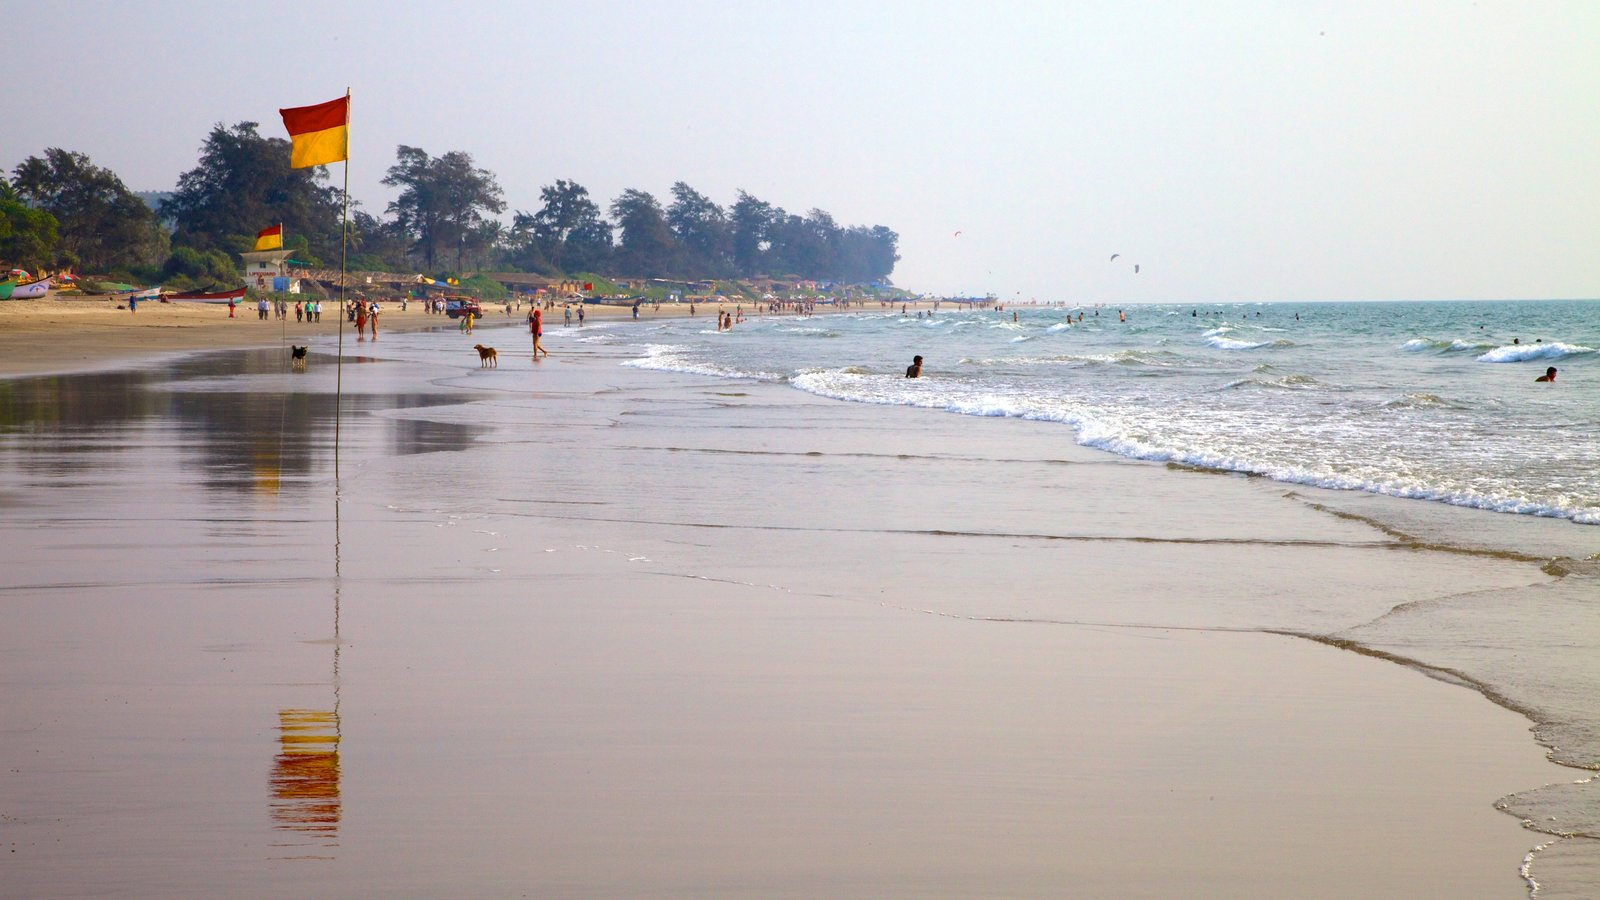 Goa featuring tropical scenes, landscape views and swimming